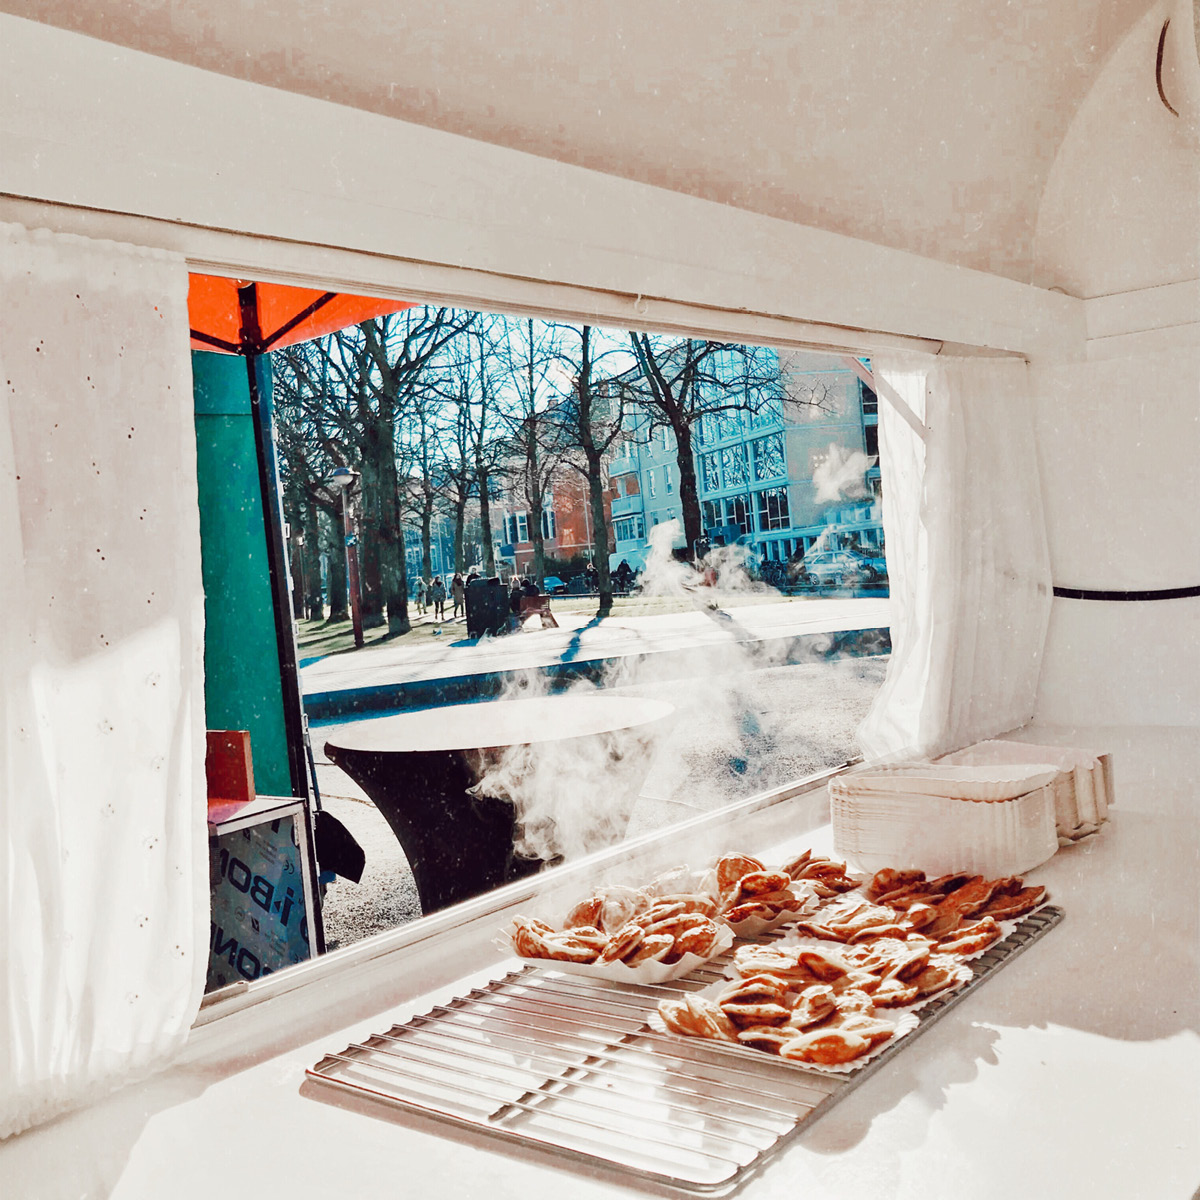 A photo from inside a food truck looking out and Dutch Pancakes sitting  in a pile.